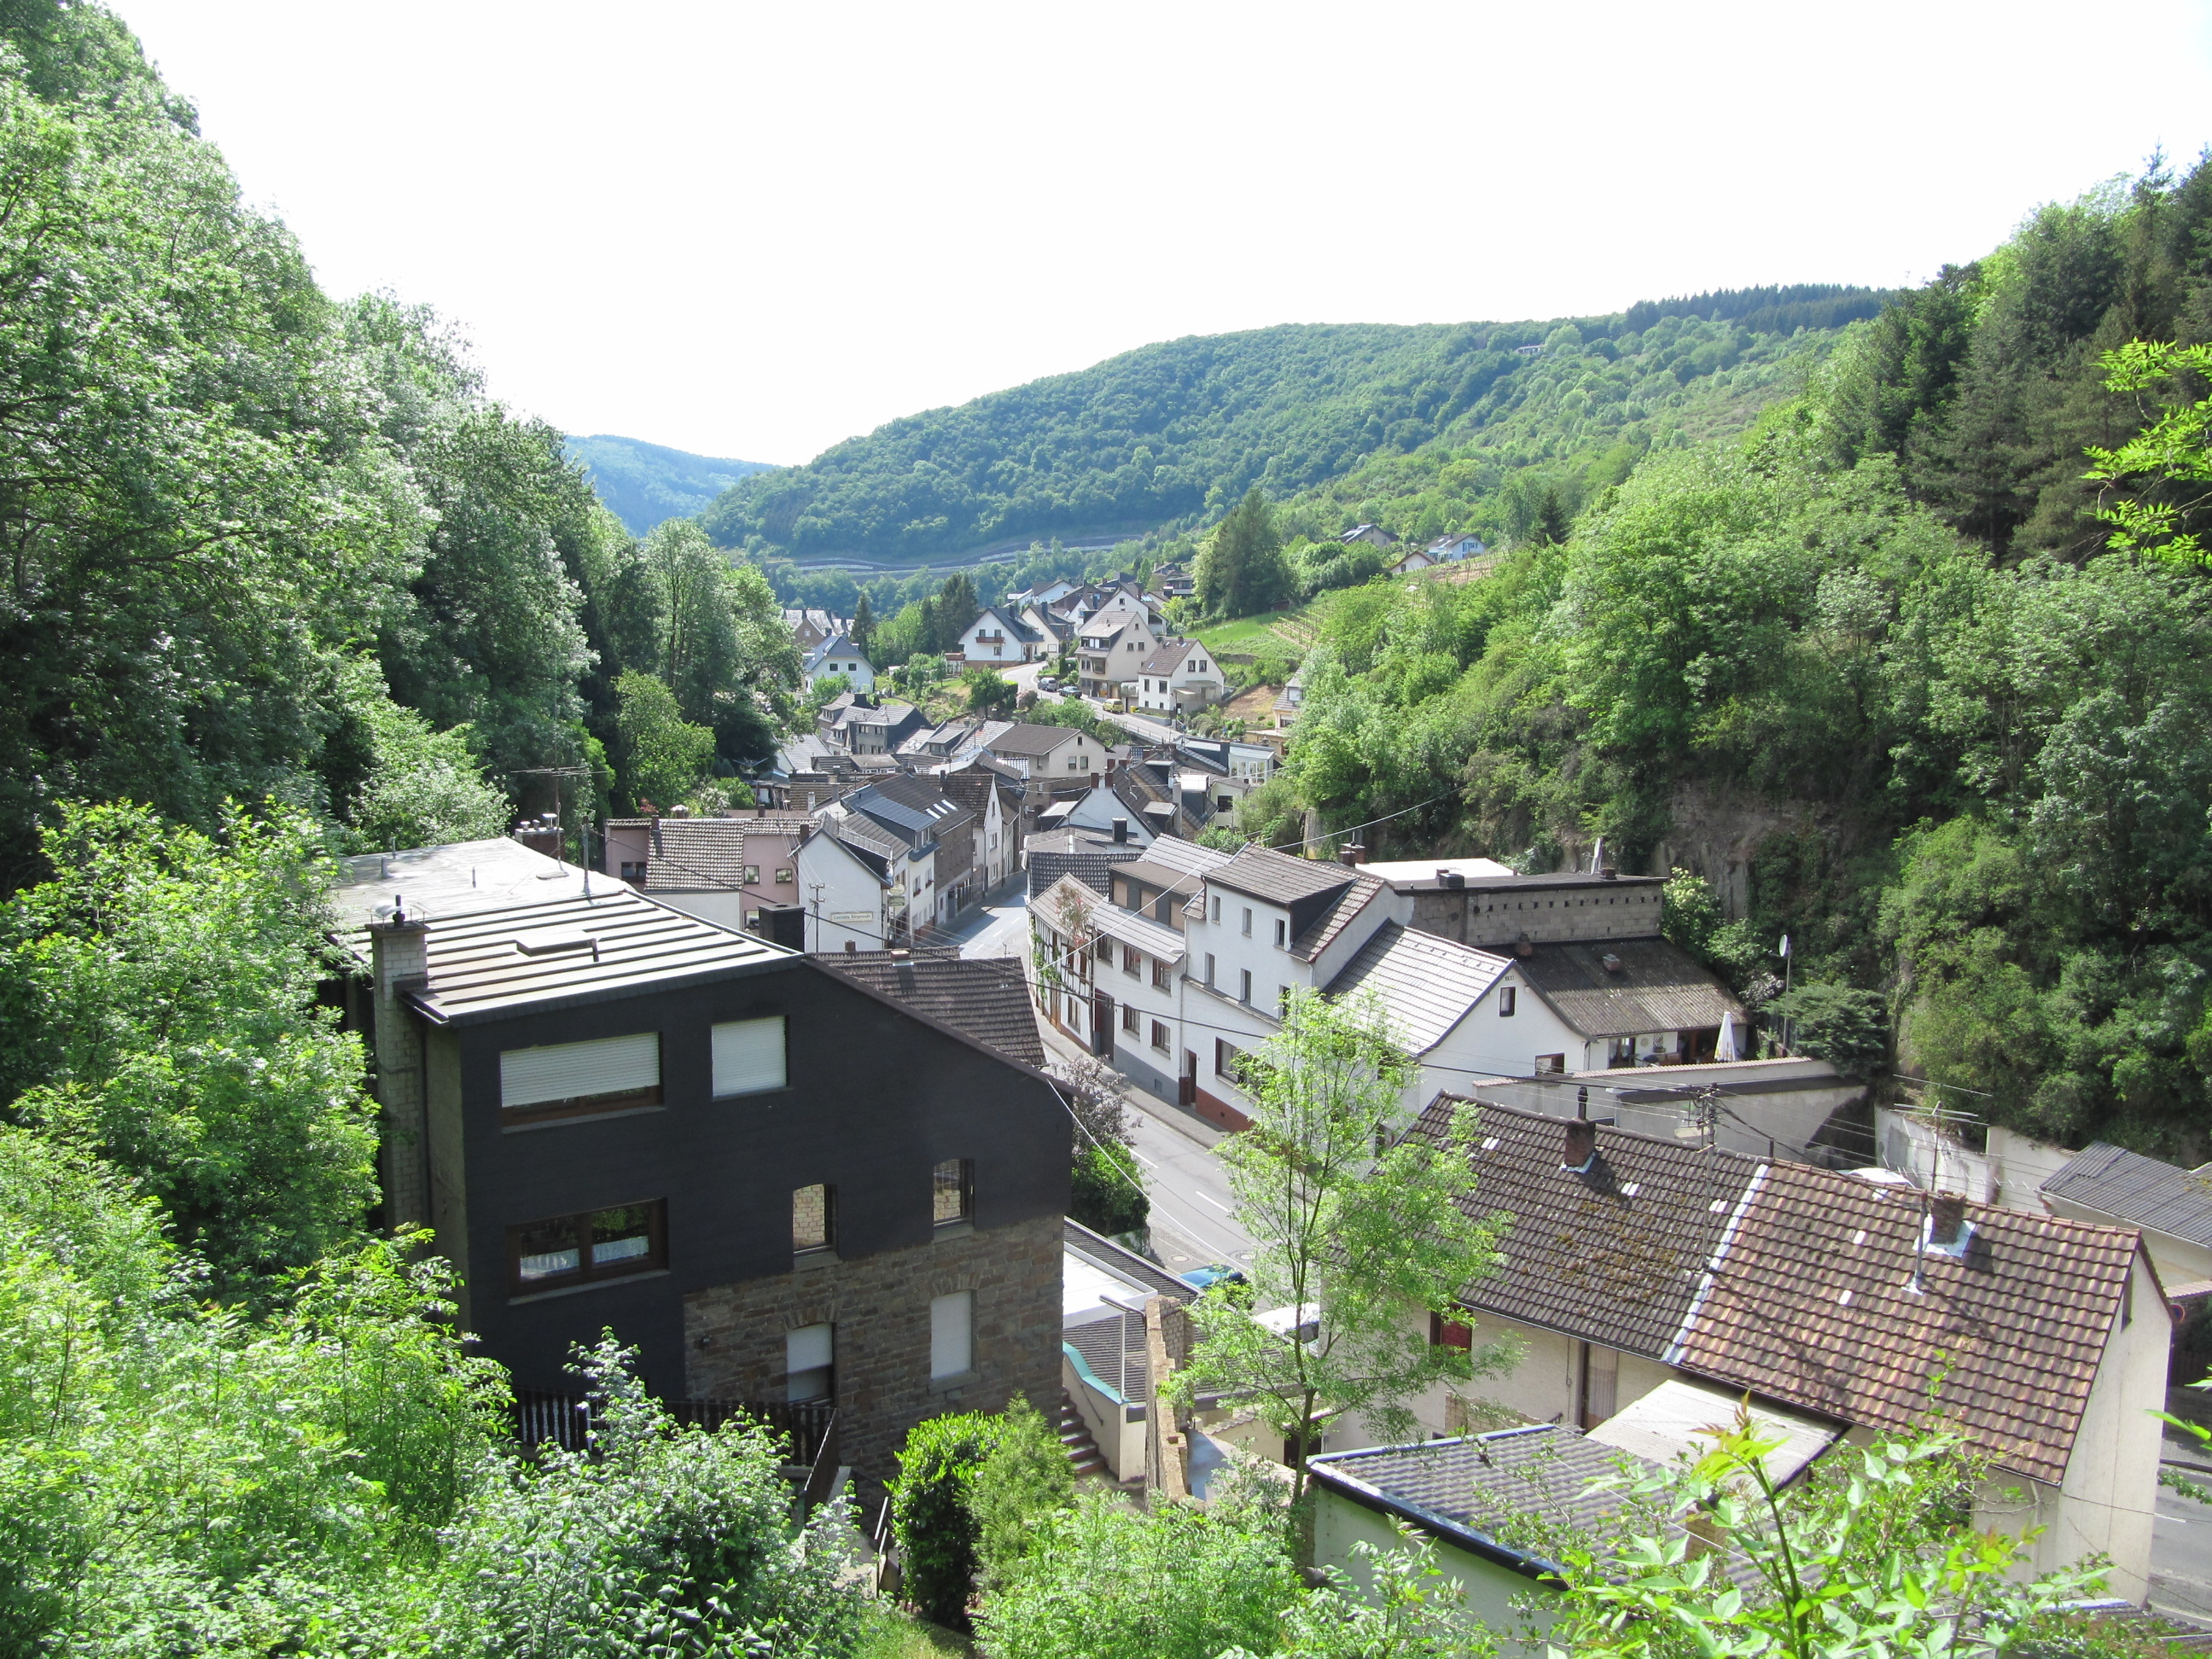 Altenahr Germany  city pictures gallery : Description Altenahr 004